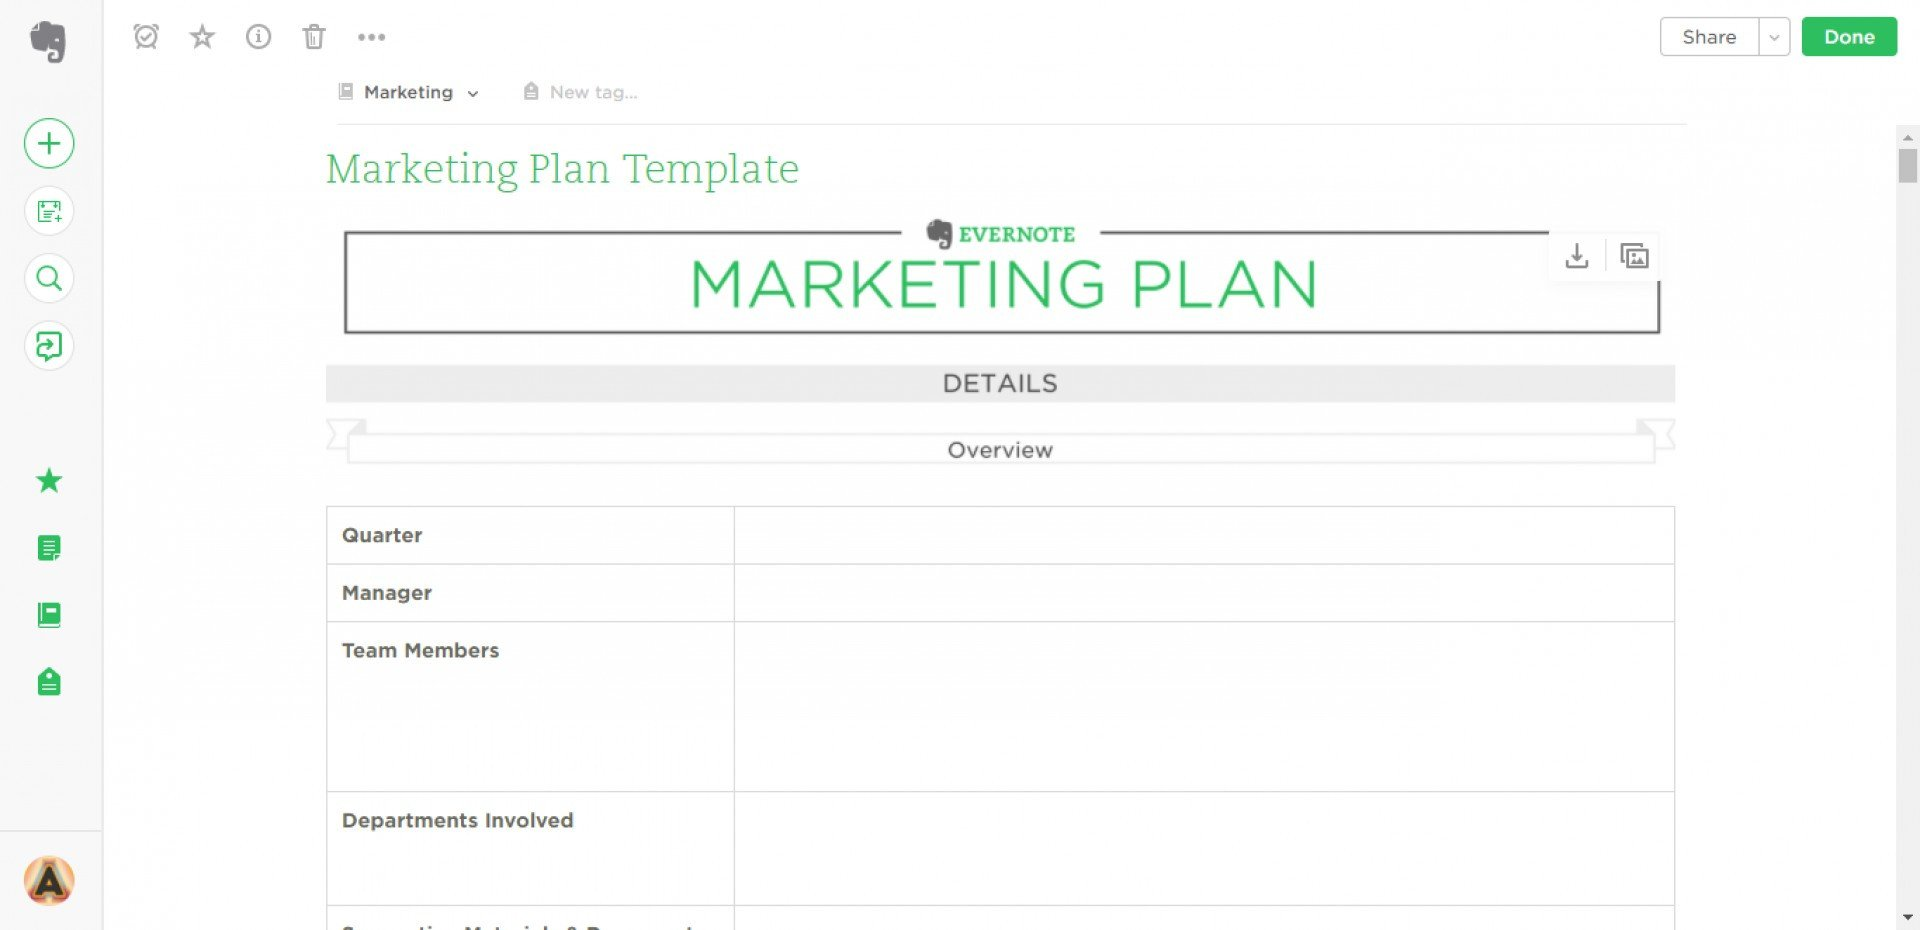 Gtd Project Planning Template 003 Plan Template Gtd Project Planning Tinypetition